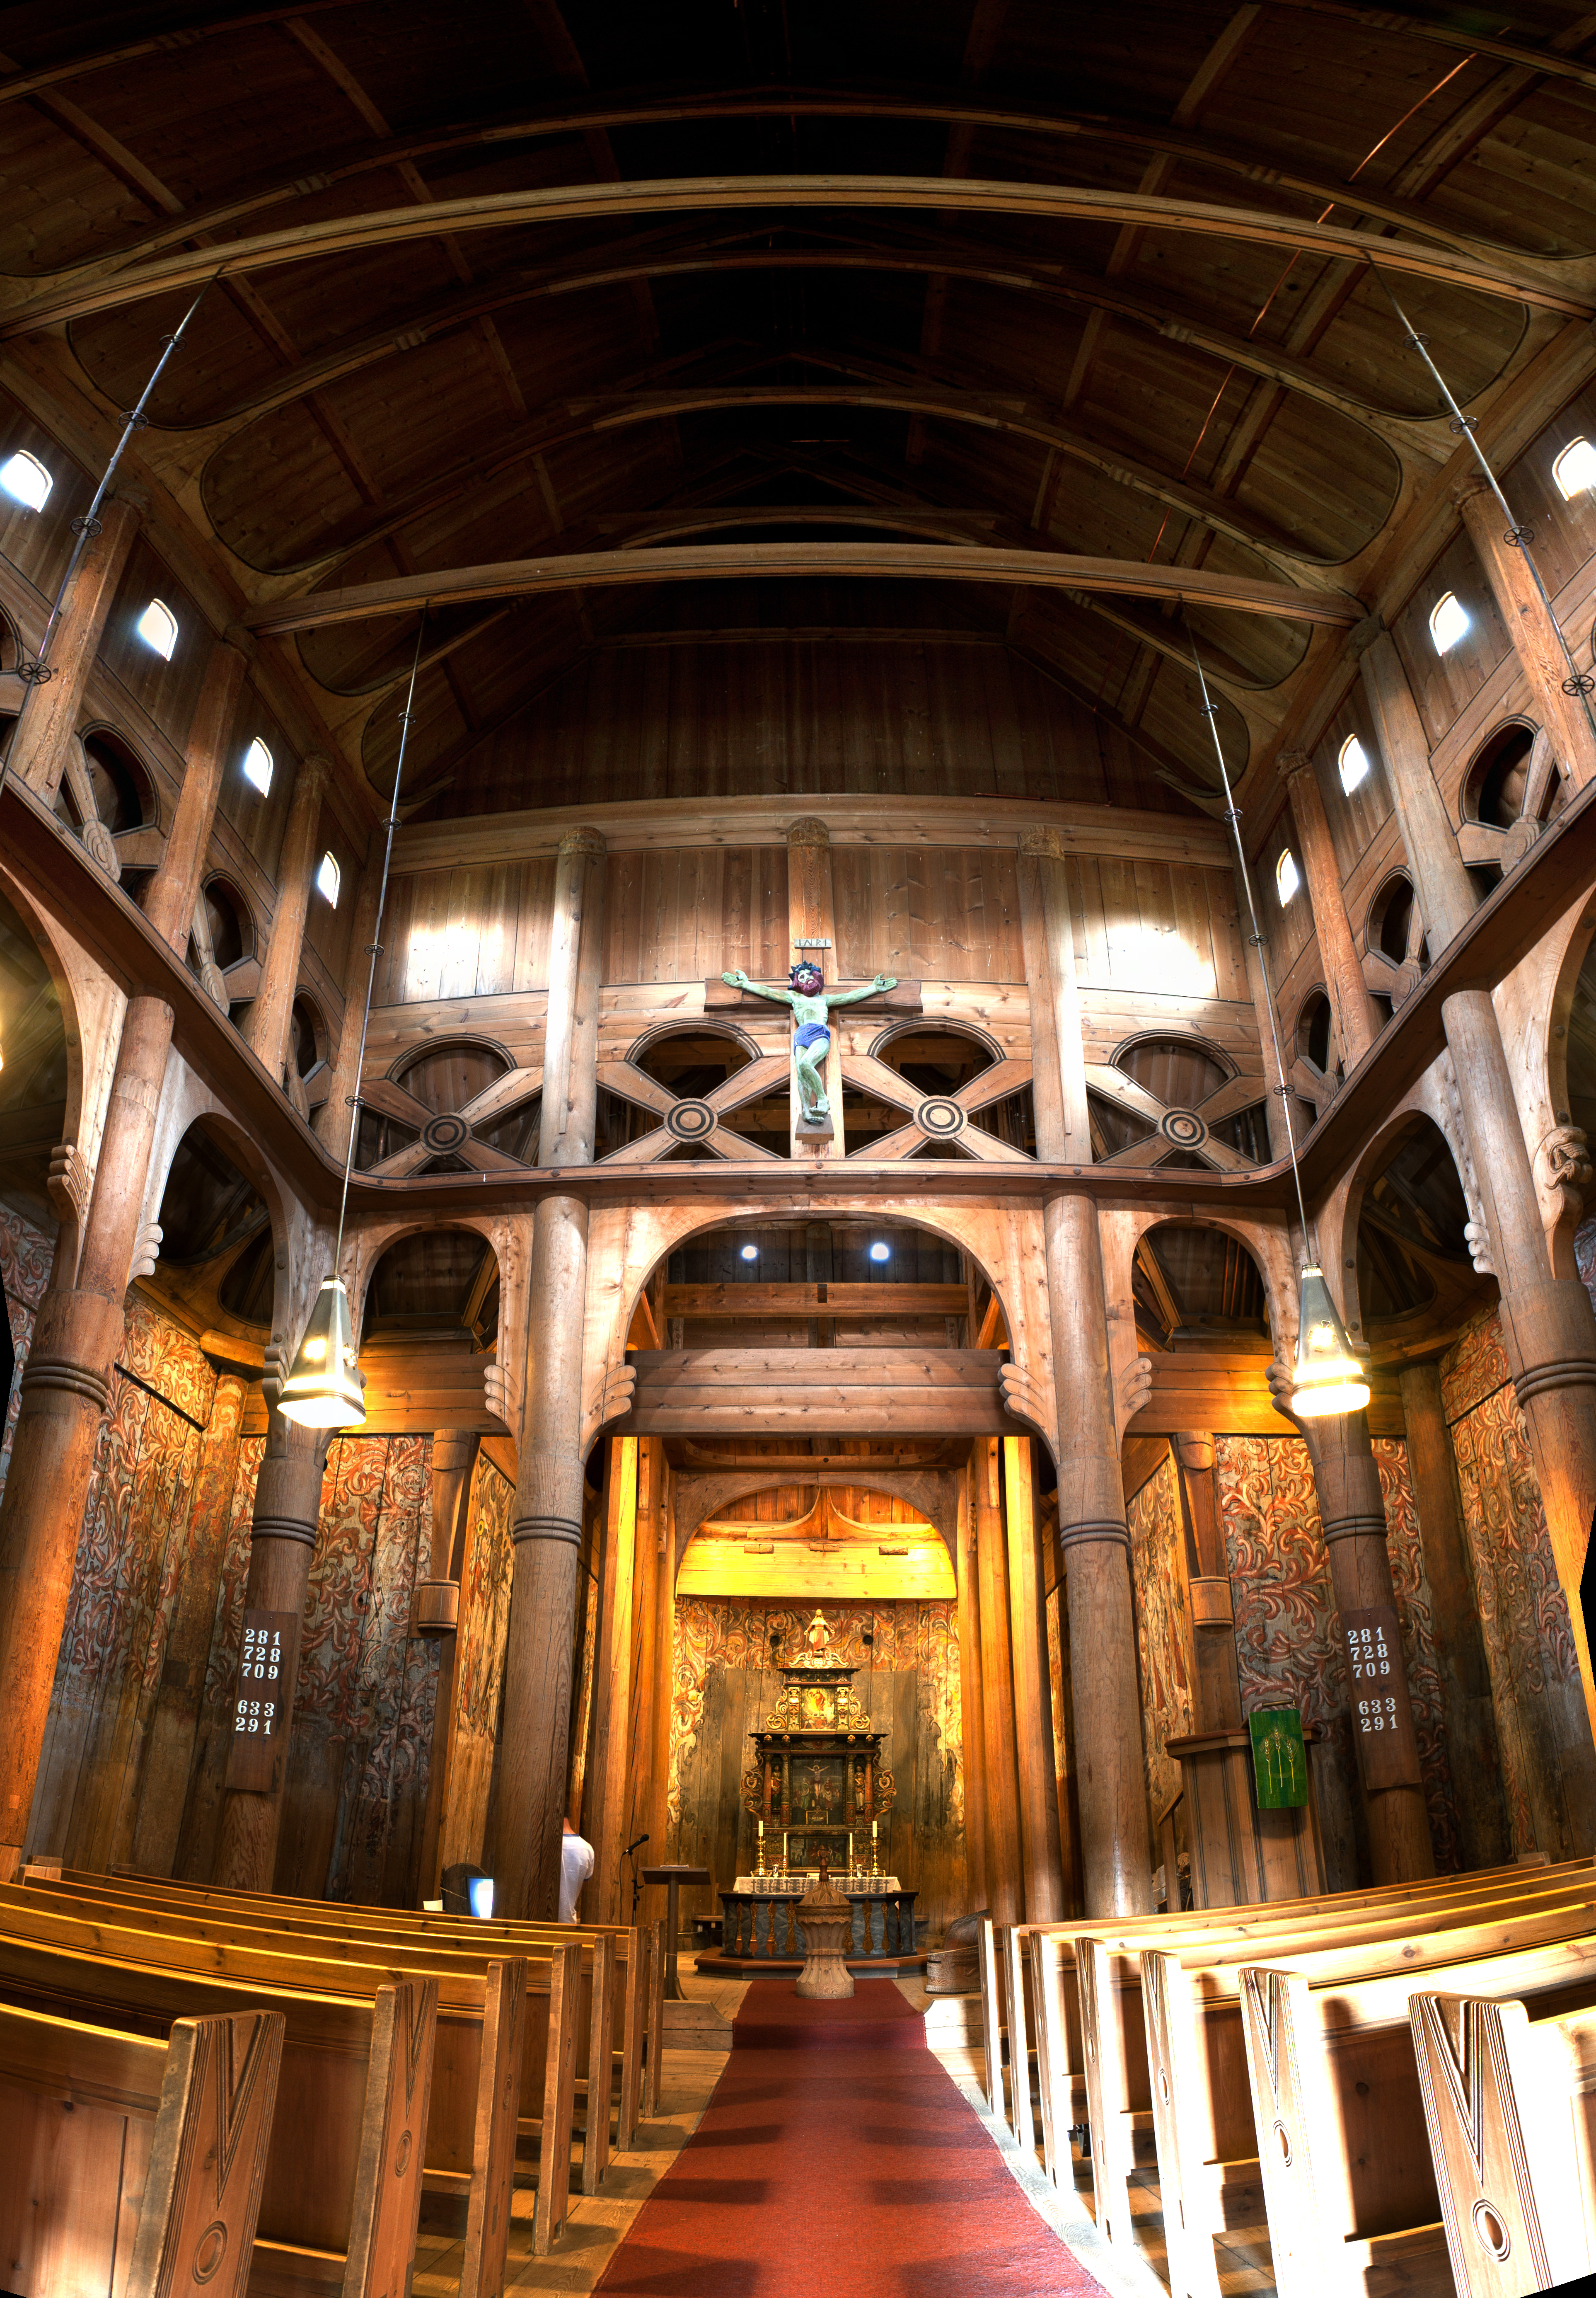 File:Stave church Heddal - interior view.jpg - Wikipedia, the free ...